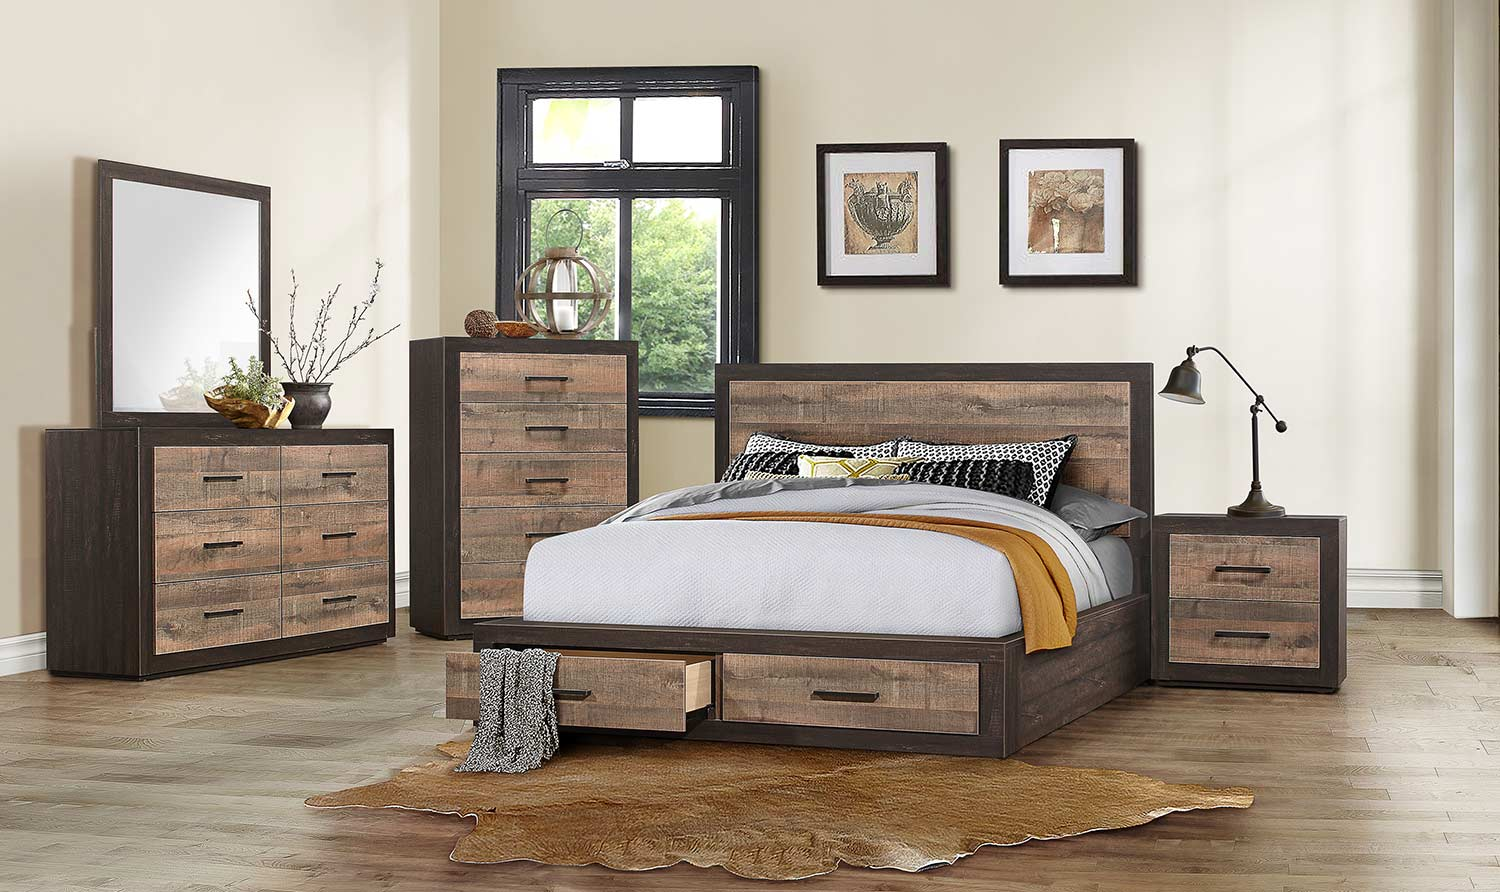 Homelegance Miter Platform Bedroom Set - Mahogany & Ebony